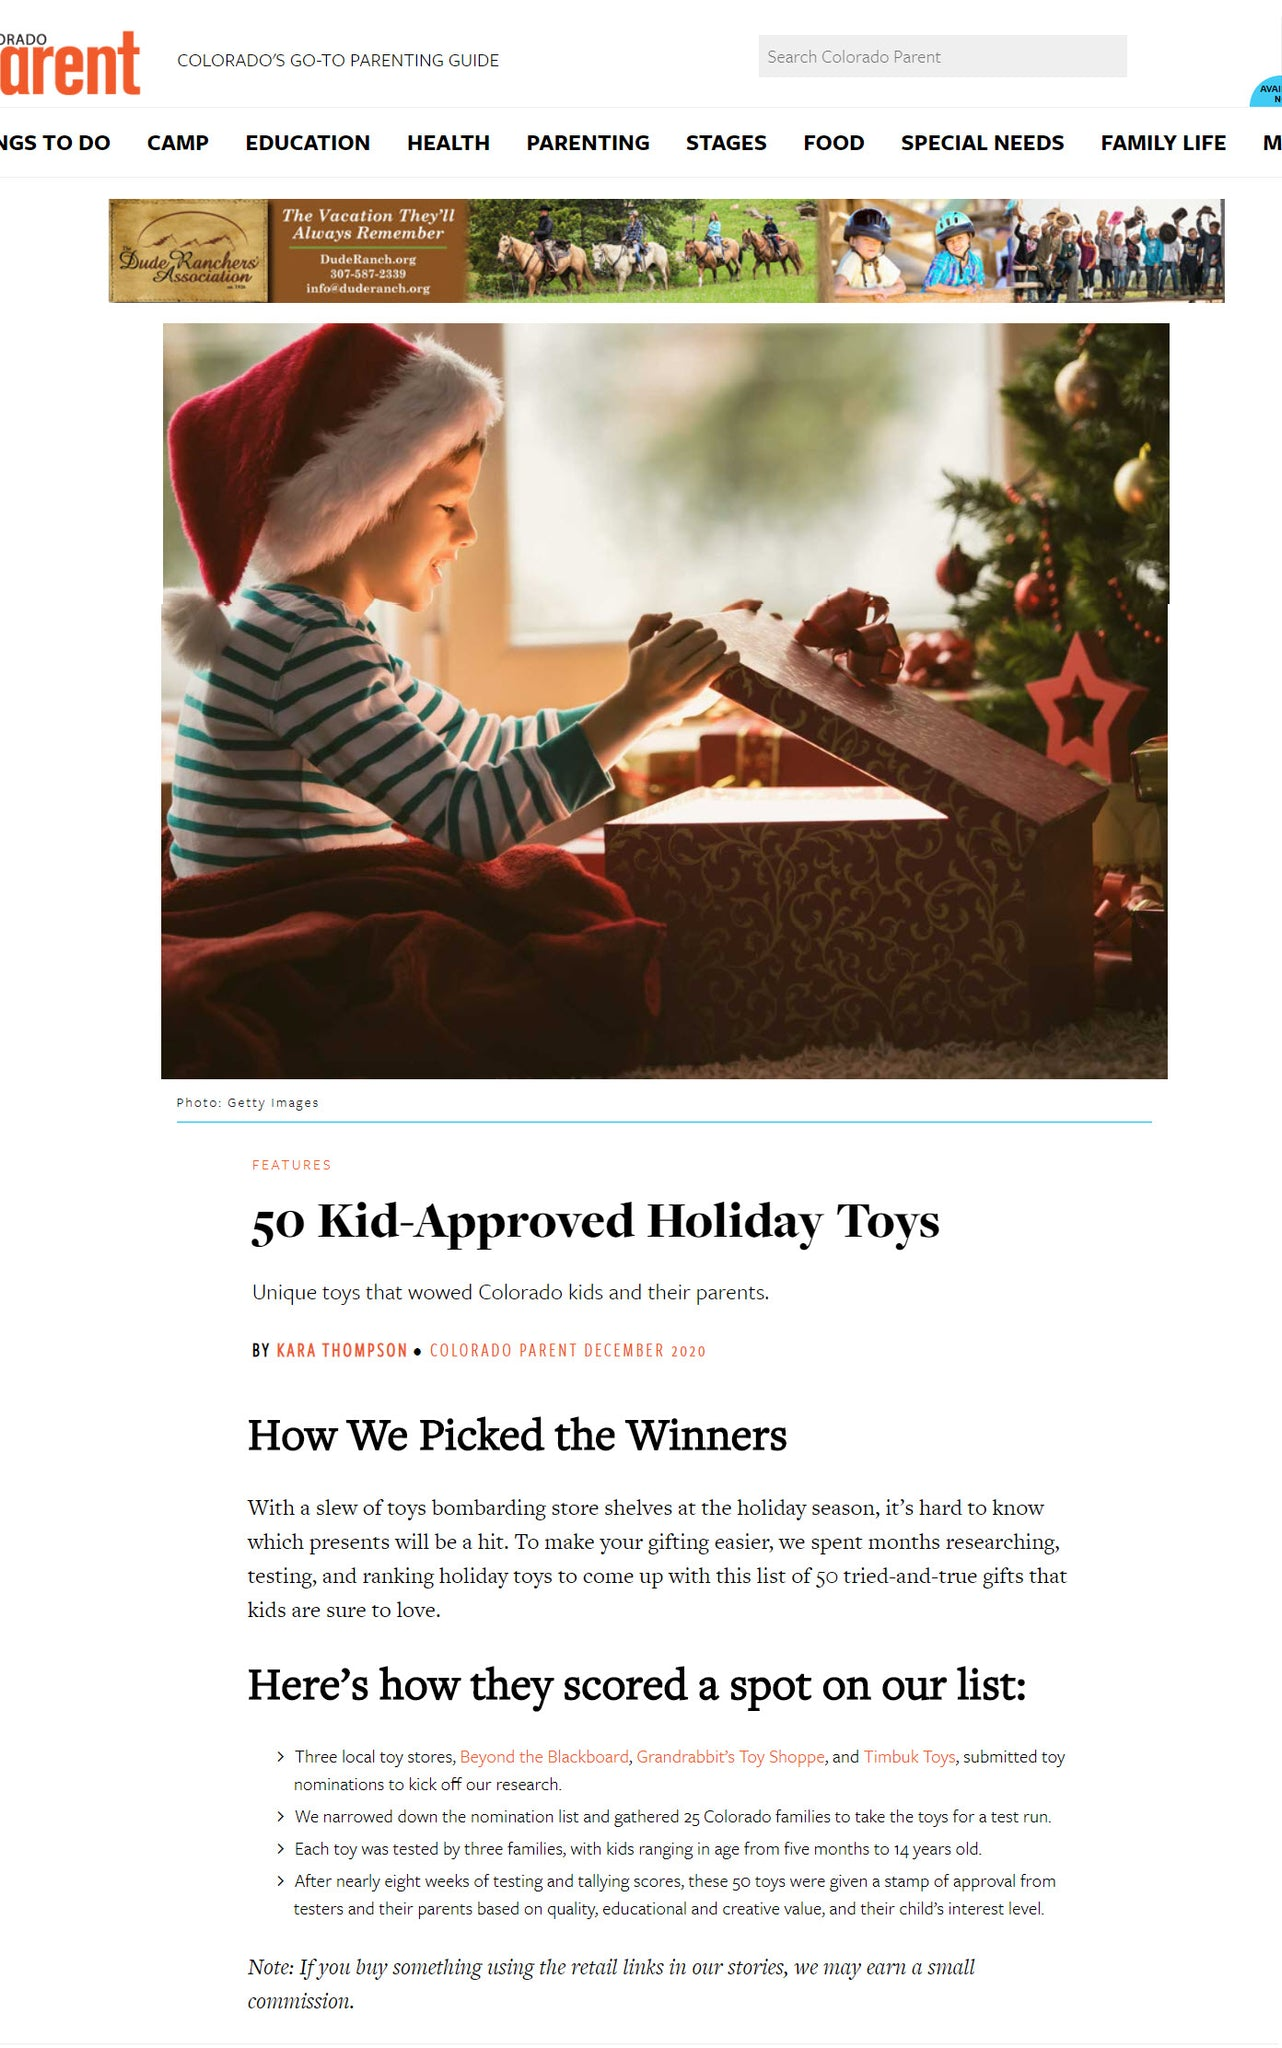 Pixio featuredin Colorado Parent as one of 50 unique toys - Holiday favorites for this season